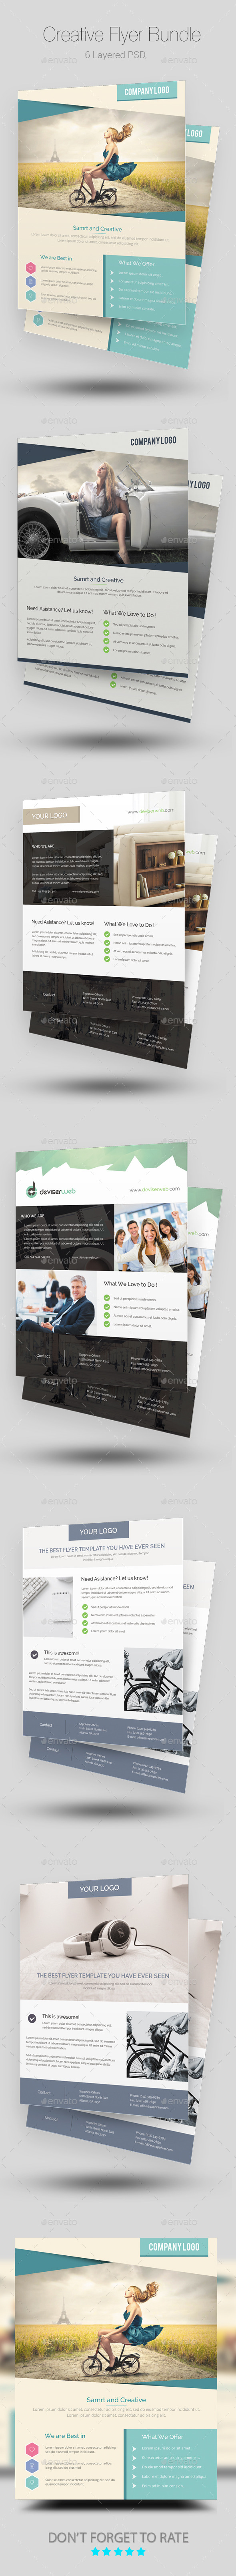 Creative Flyer/Poster Bundle - Corporate Flyers